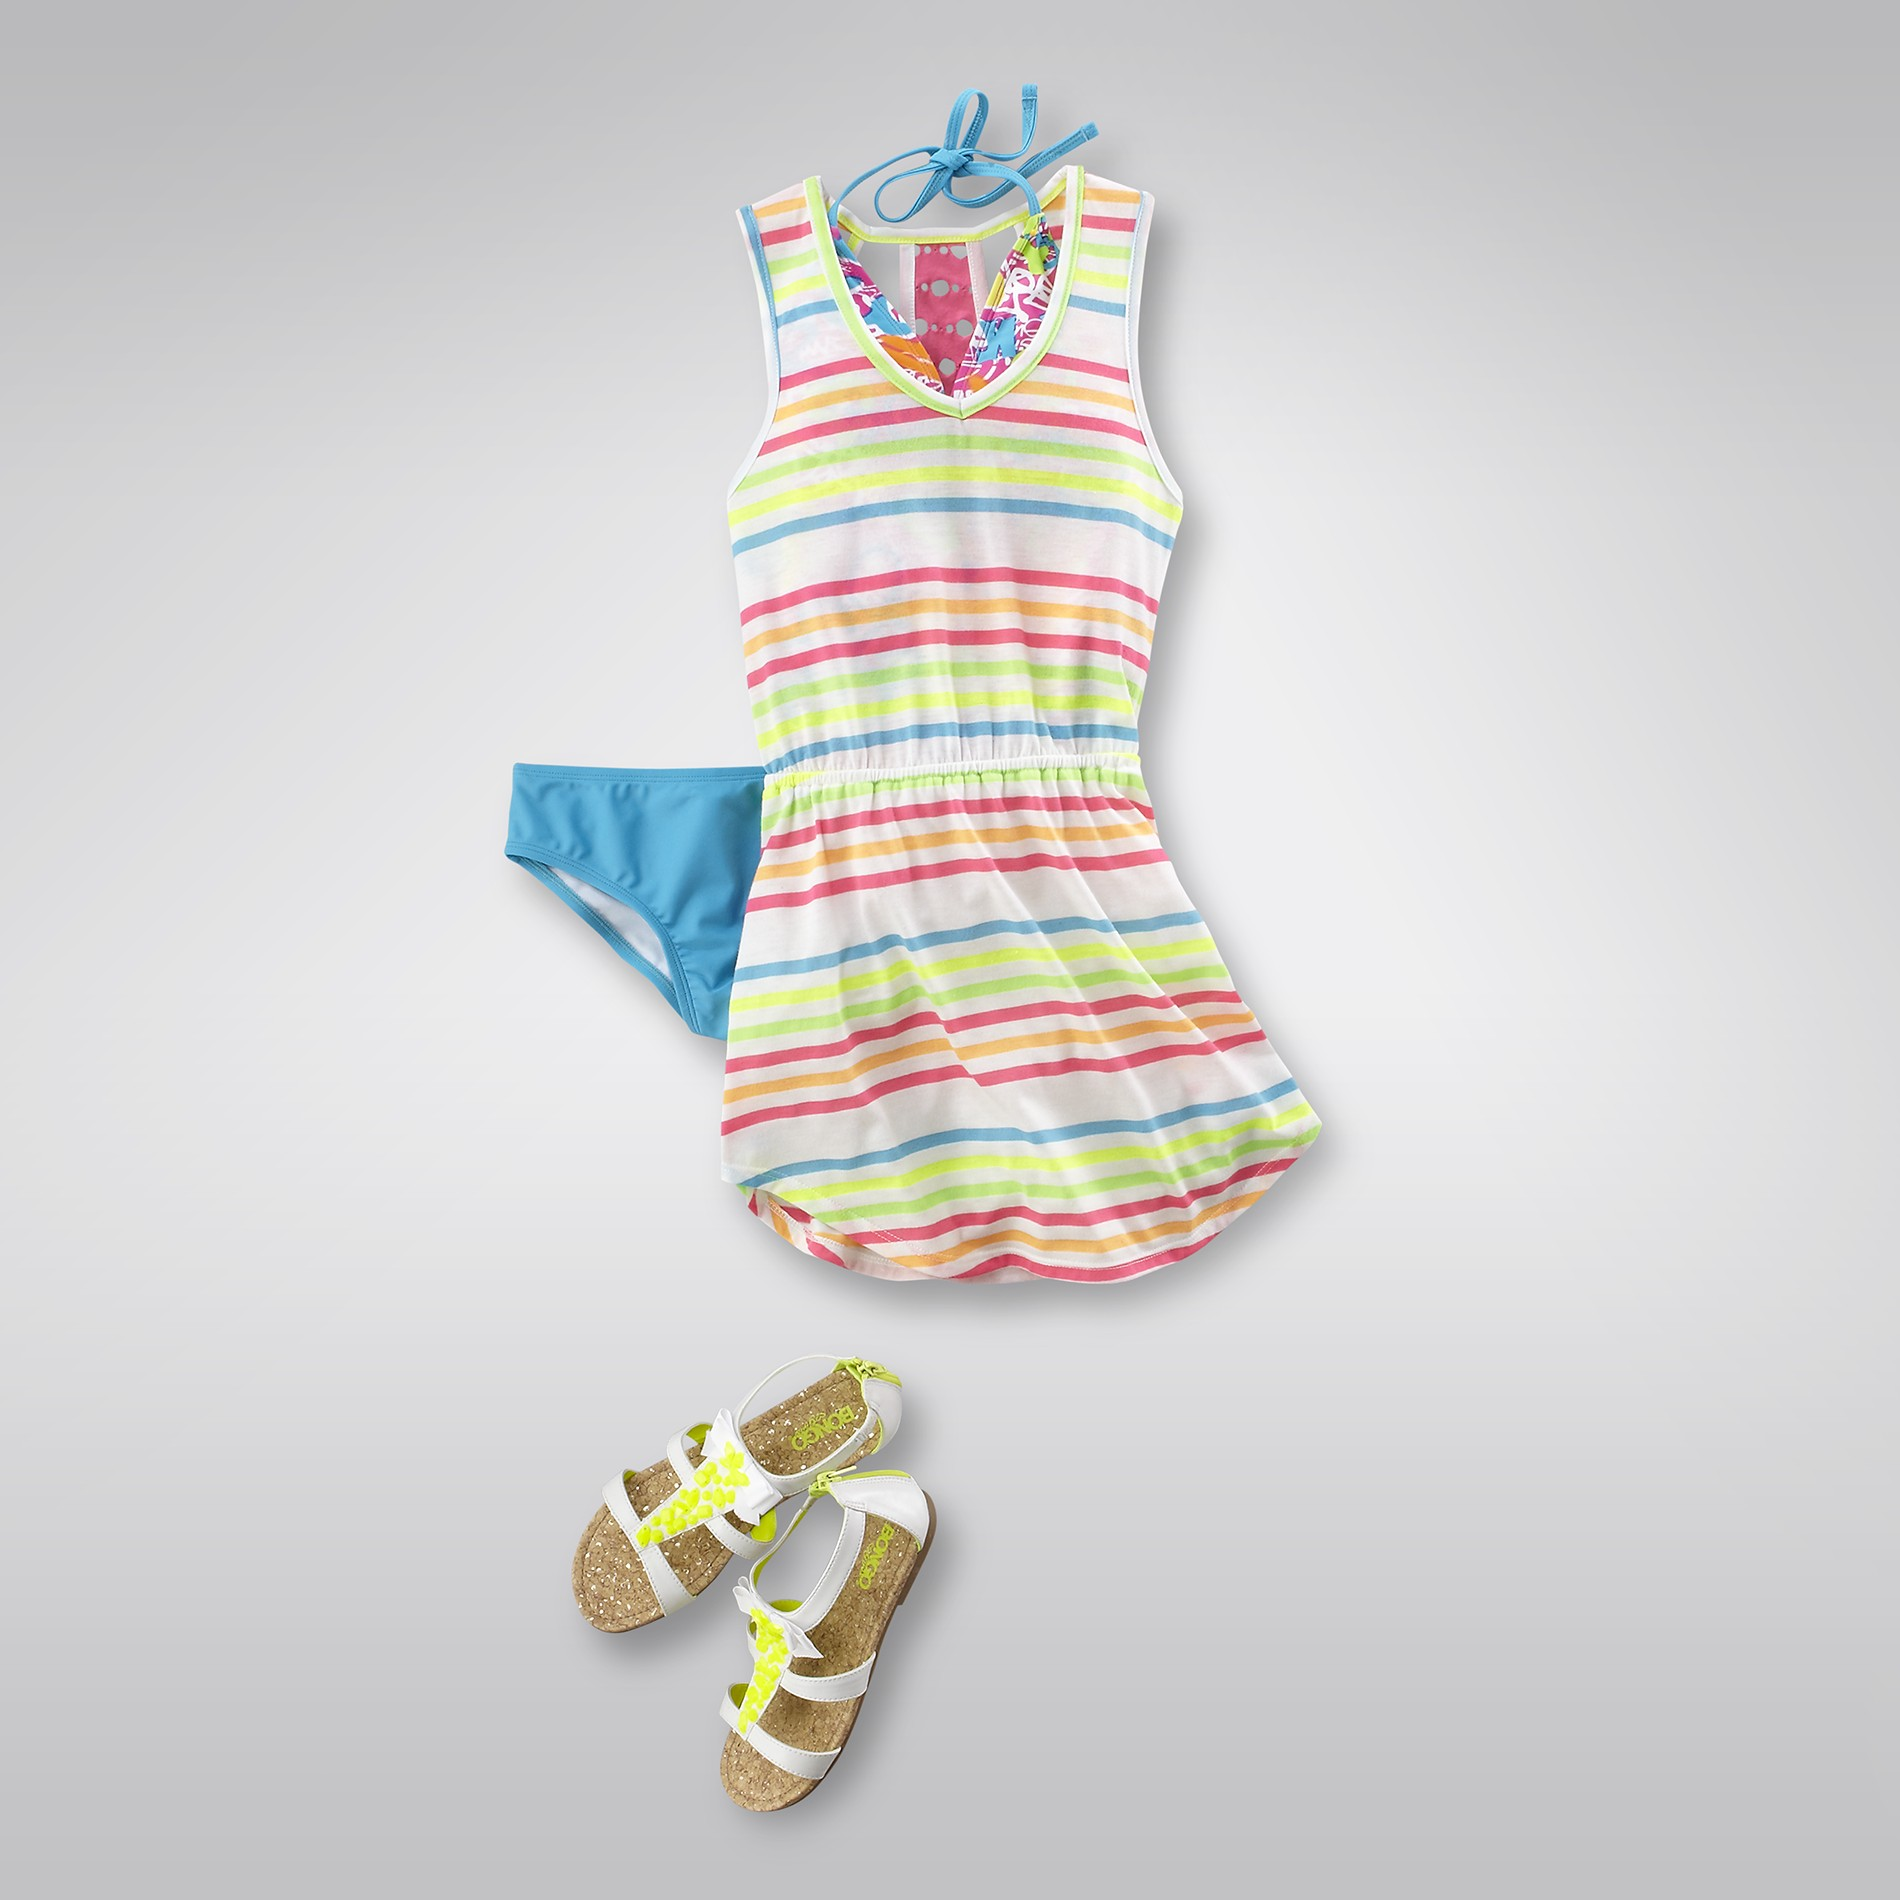 Rainless Rainbow Outfit at Kmart.com